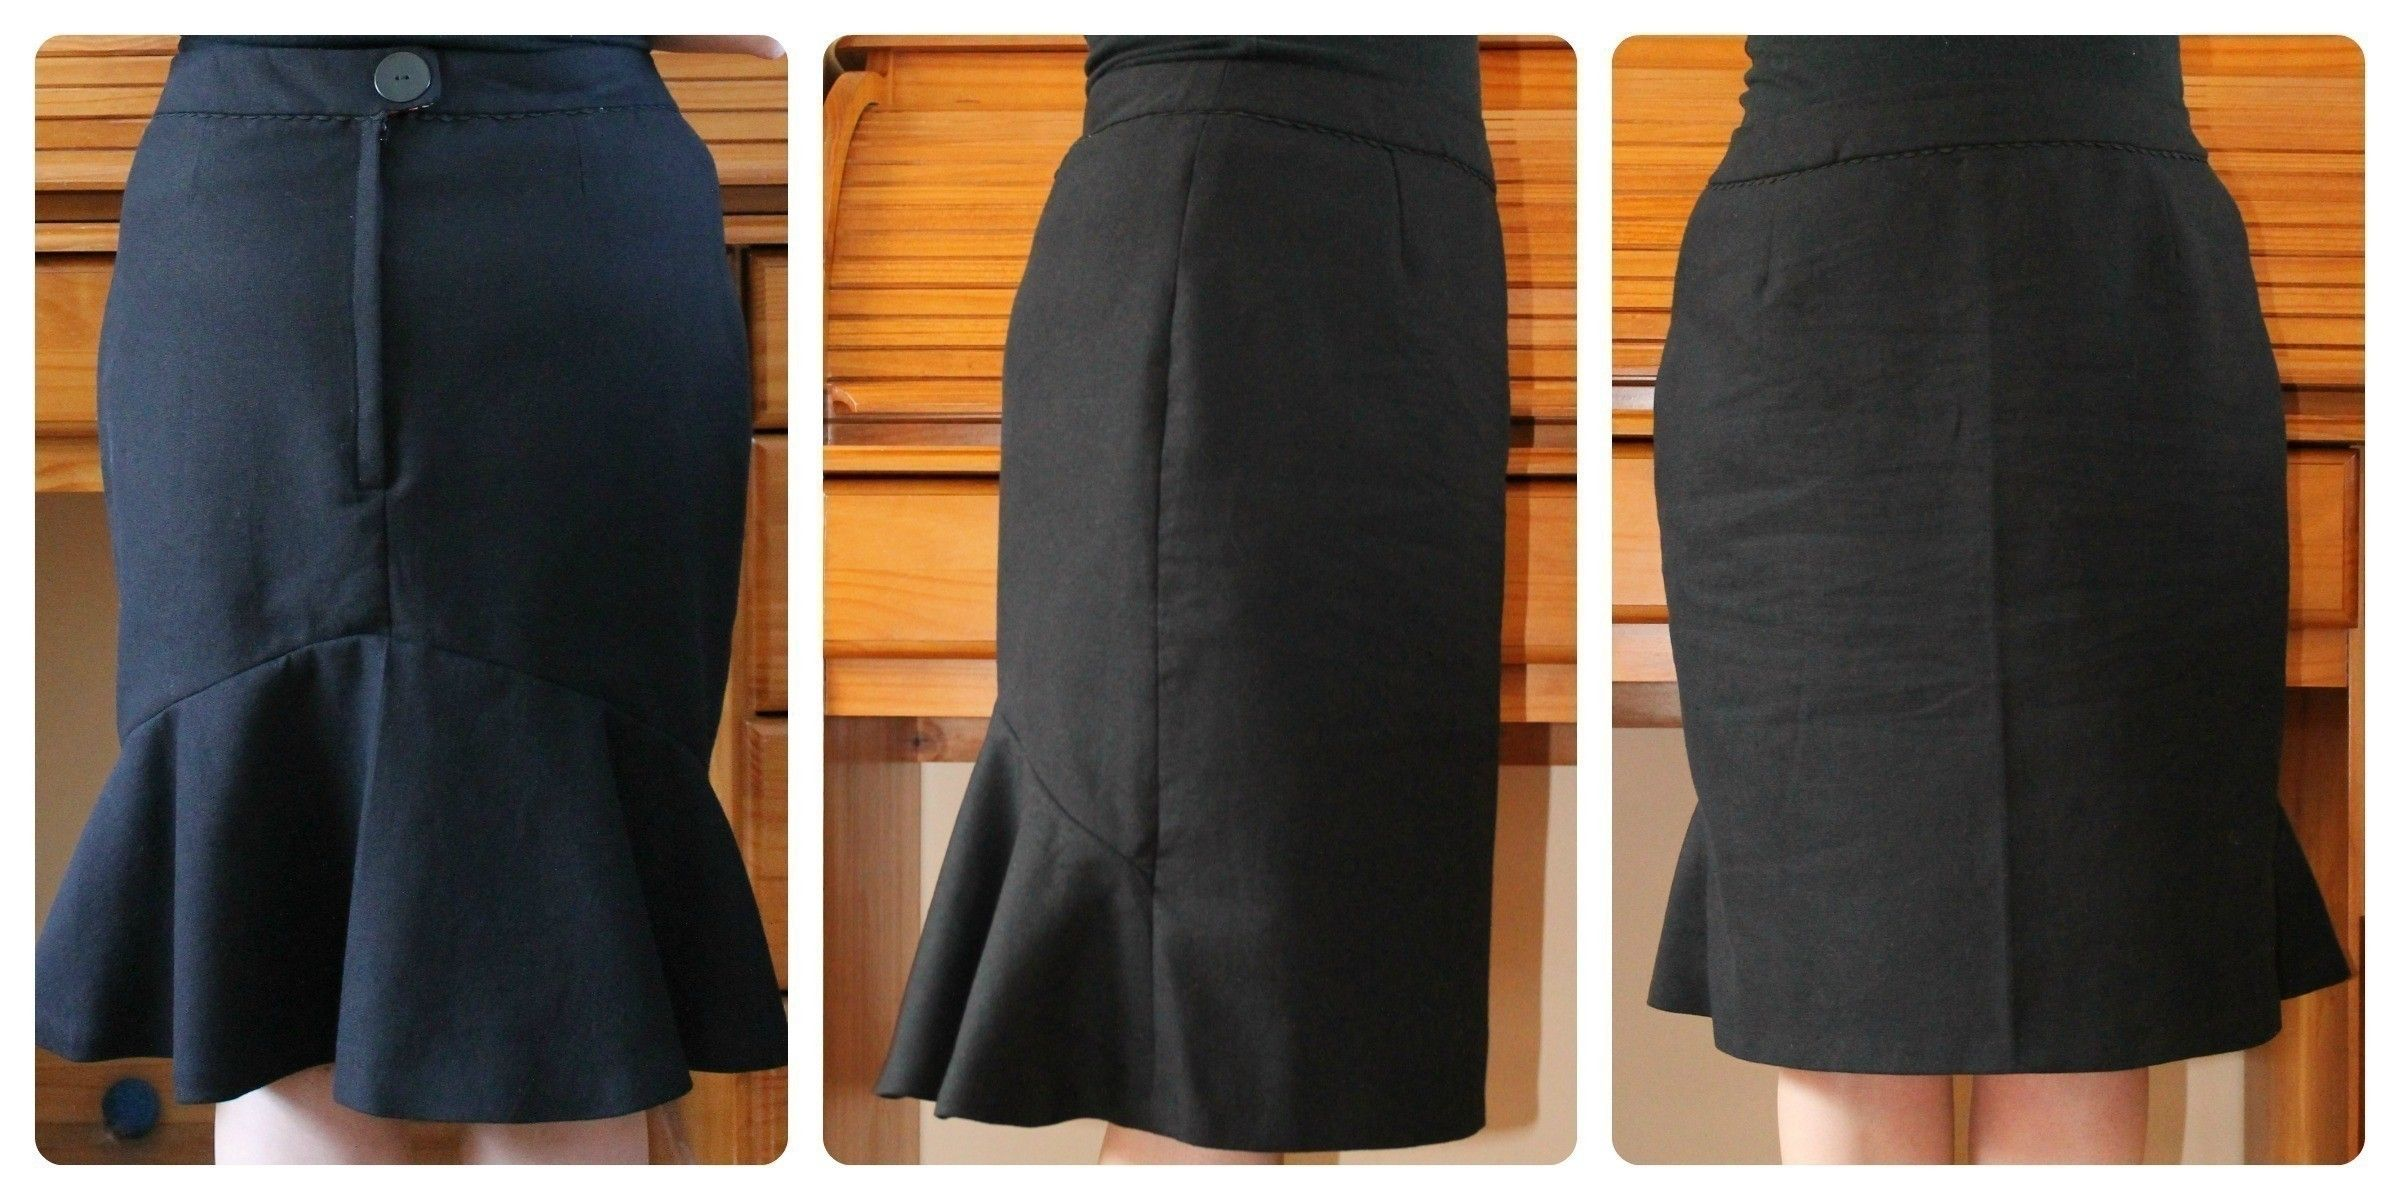 Flounce Skirt • Free tutorial with pictures on how to make a pencil skirt in under 120 minutes